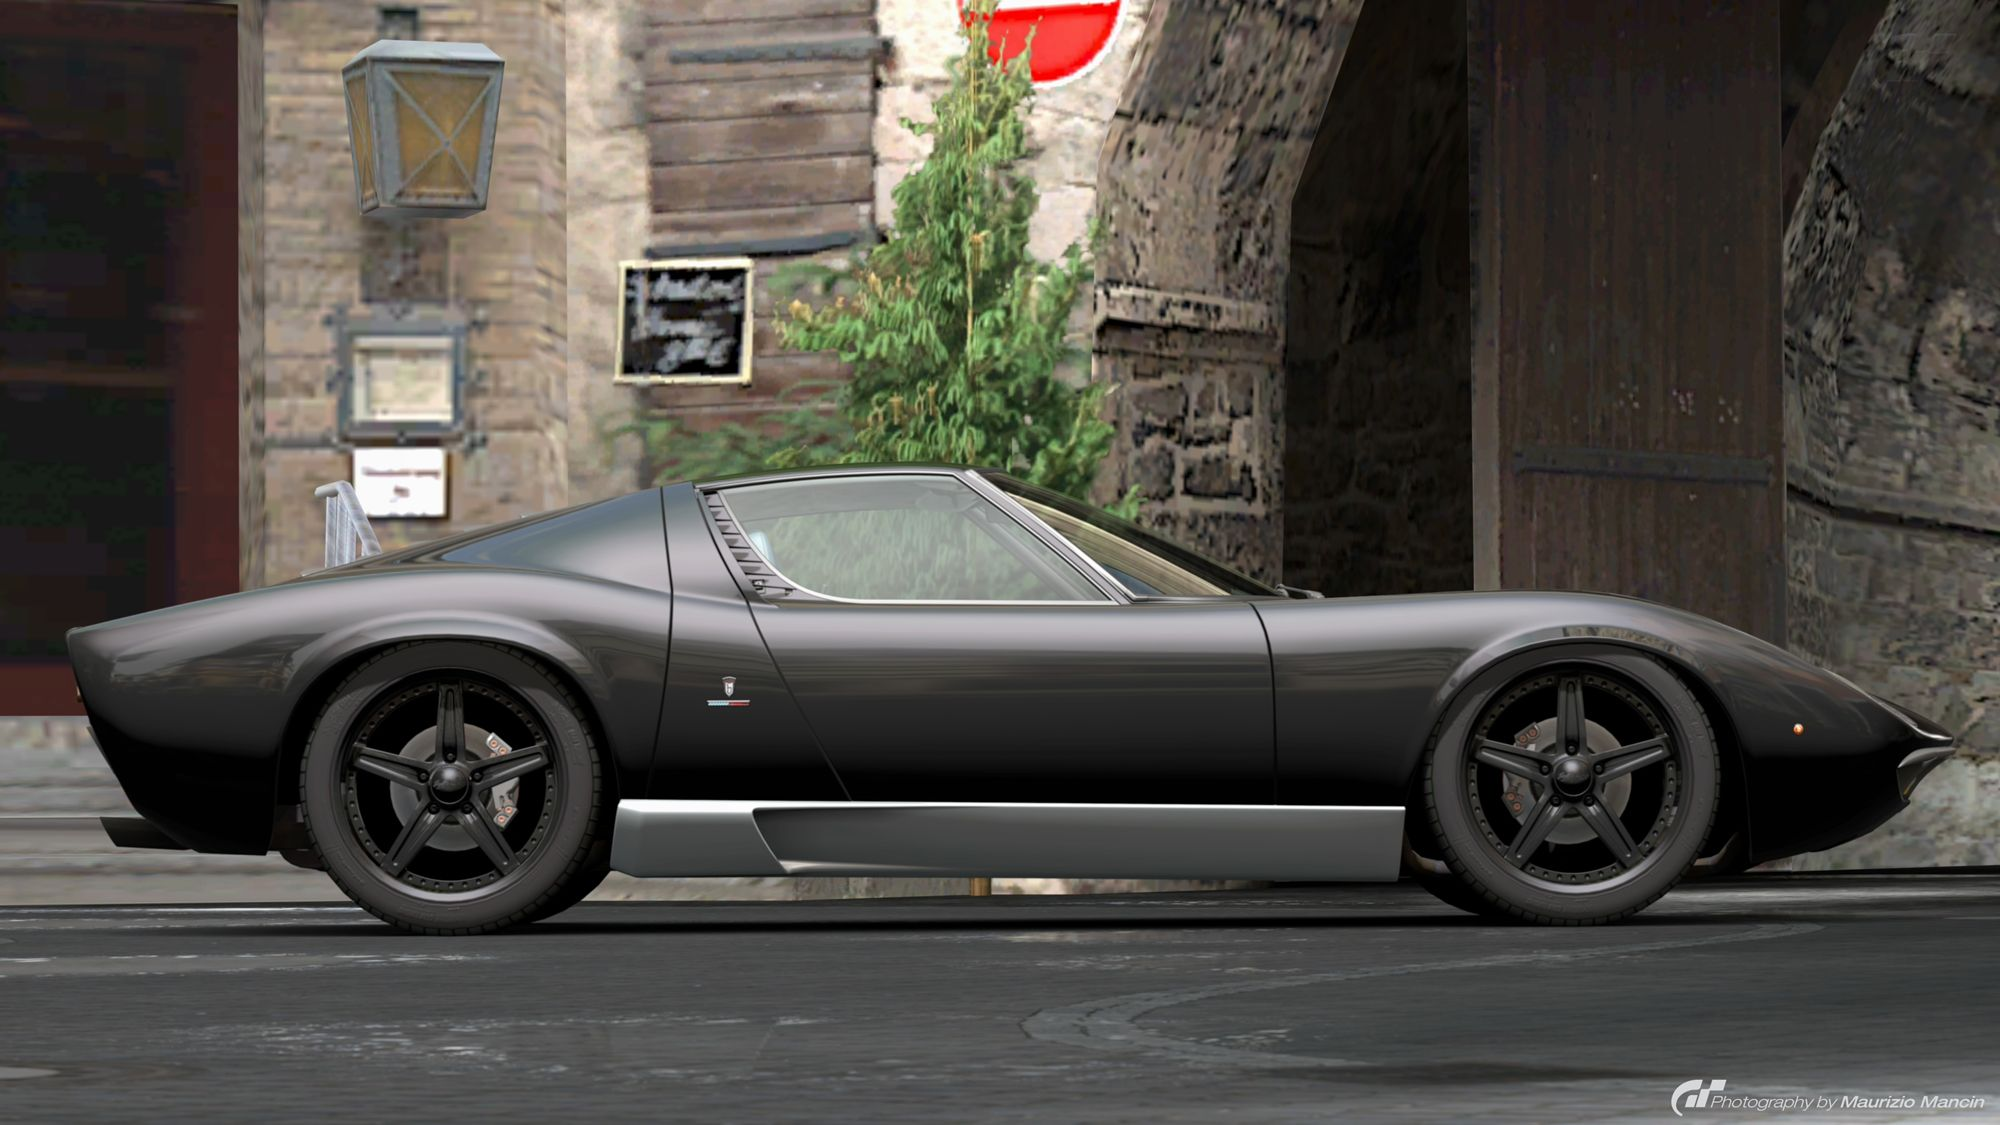 lamborghini miura p400 s01 right up there with the e type as one